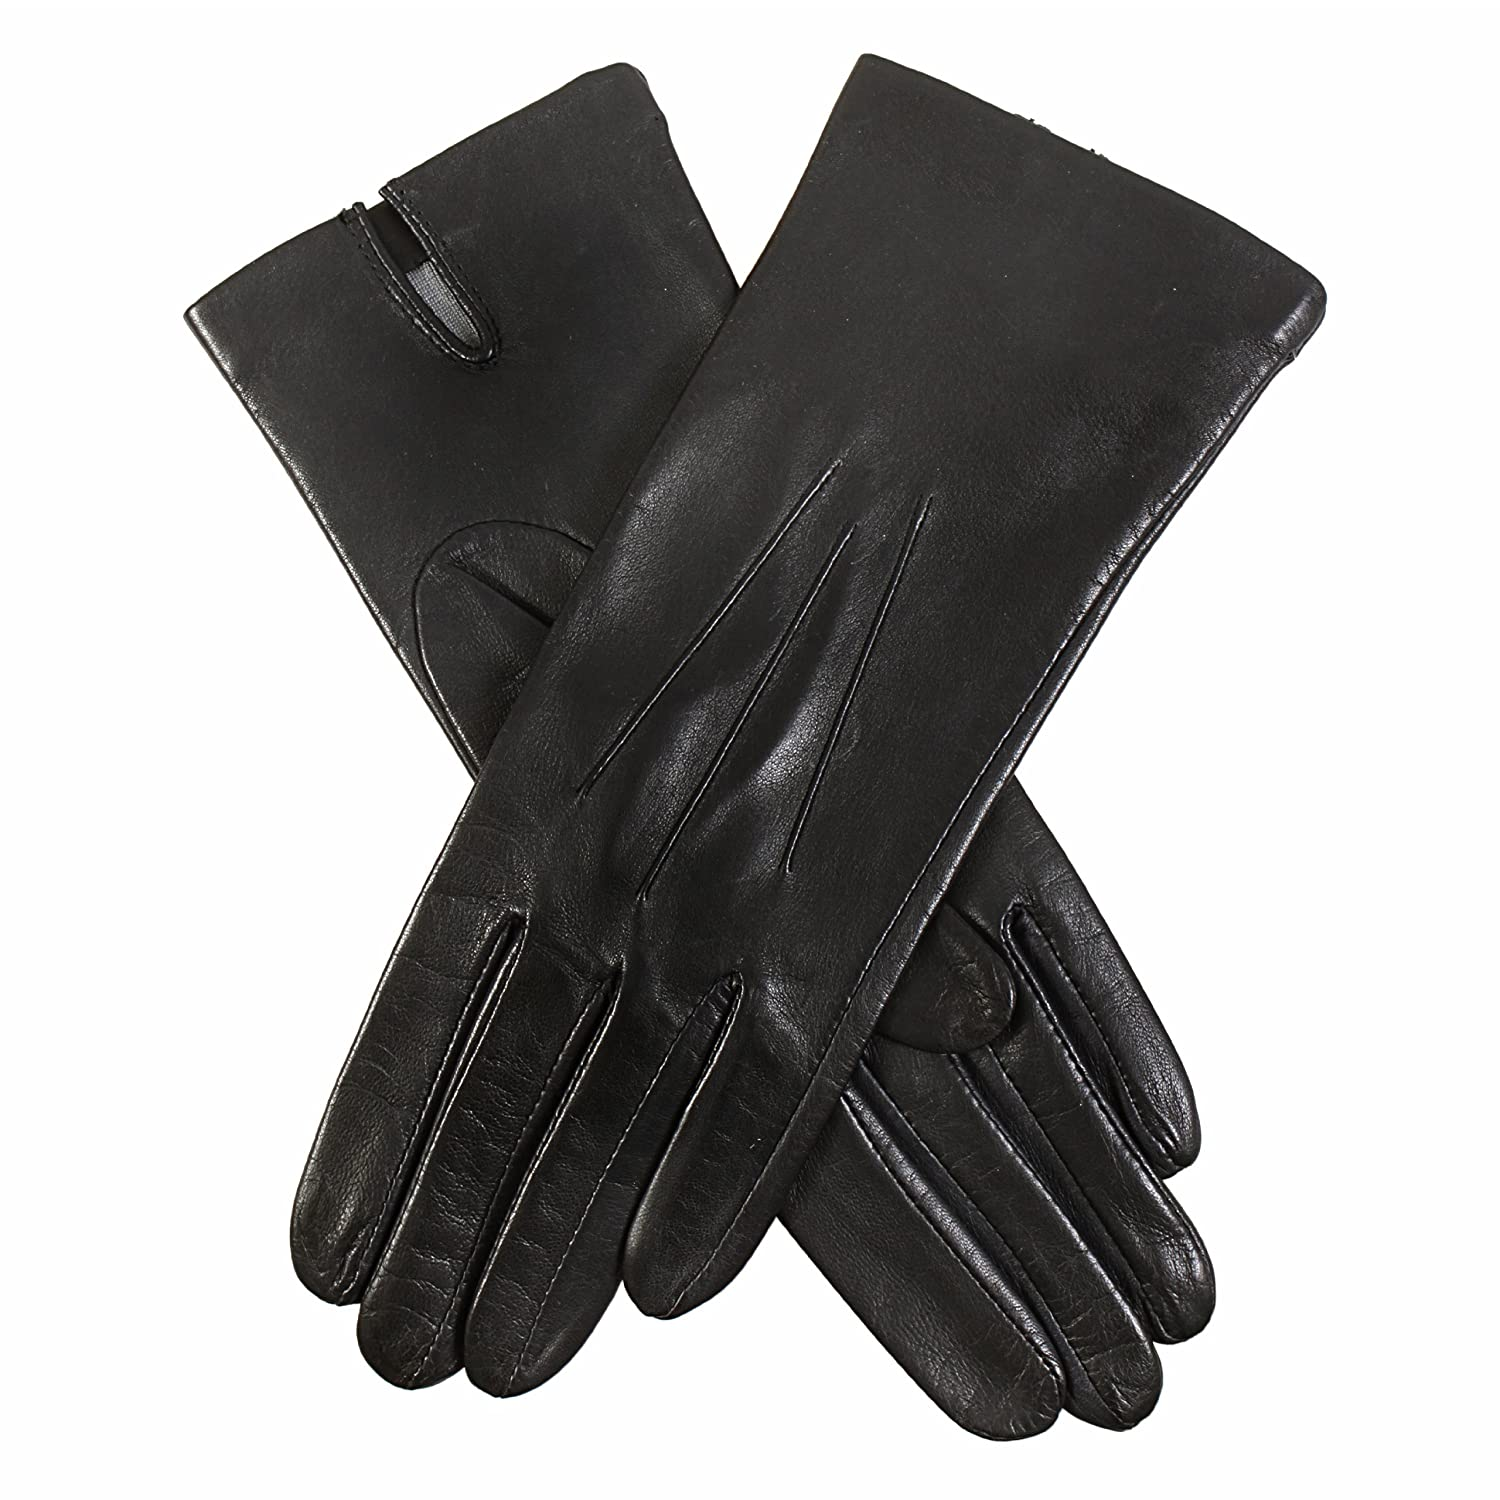 John lewis ladies black leather gloves - John Lewis Ladies Black Leather Gloves 6